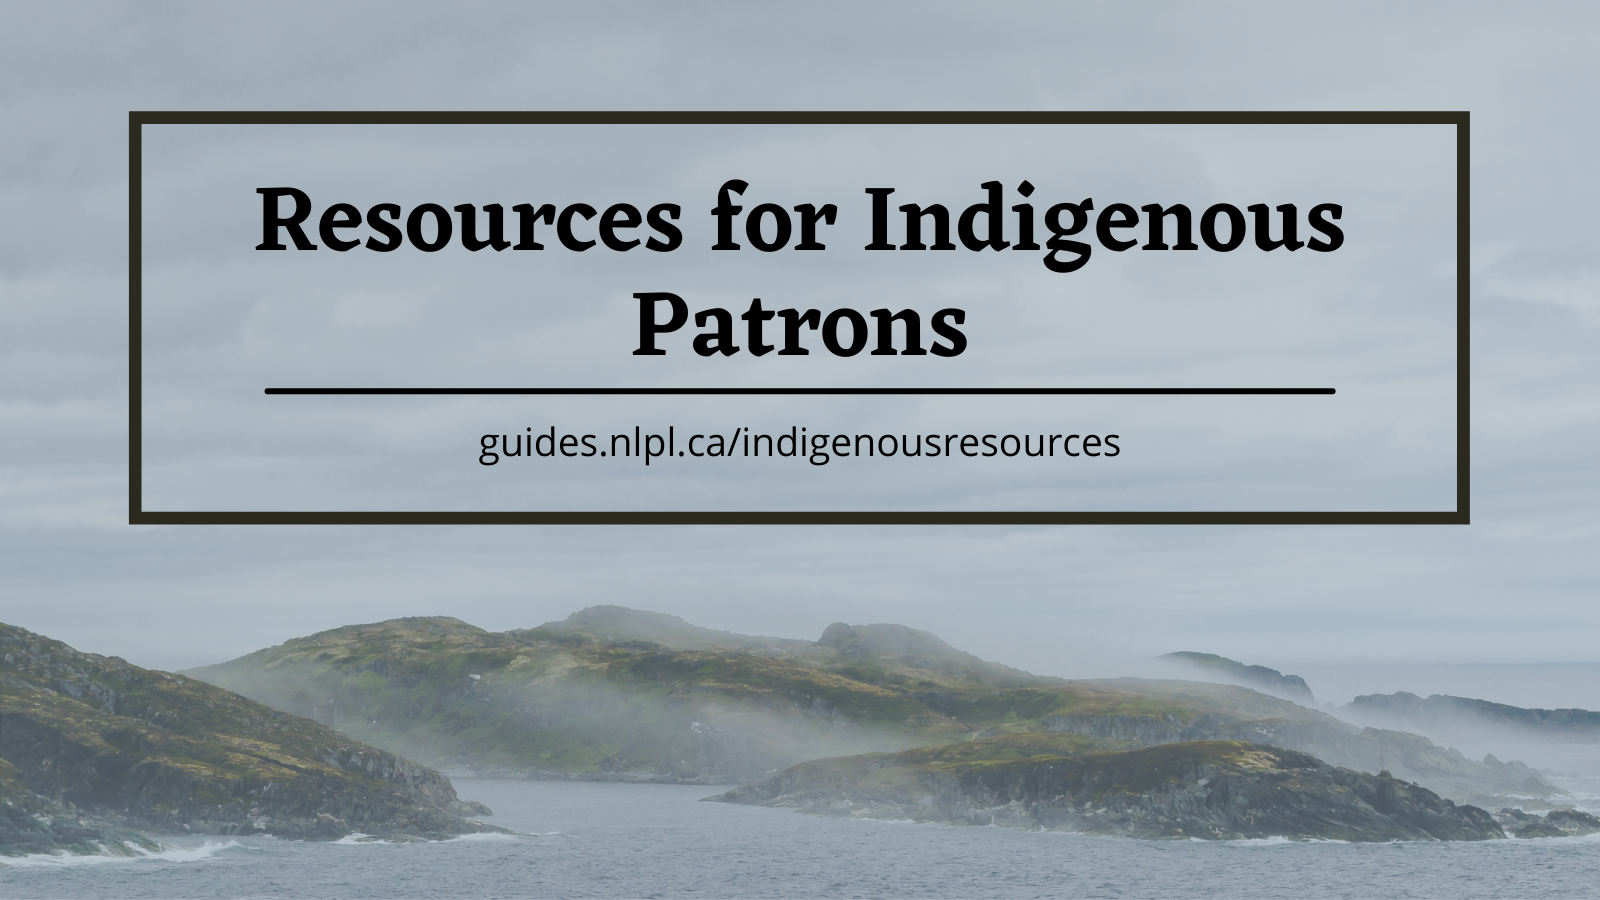 """Image of Newfoundland coast with the words """"Resources for Indigenous Patrons"""""""